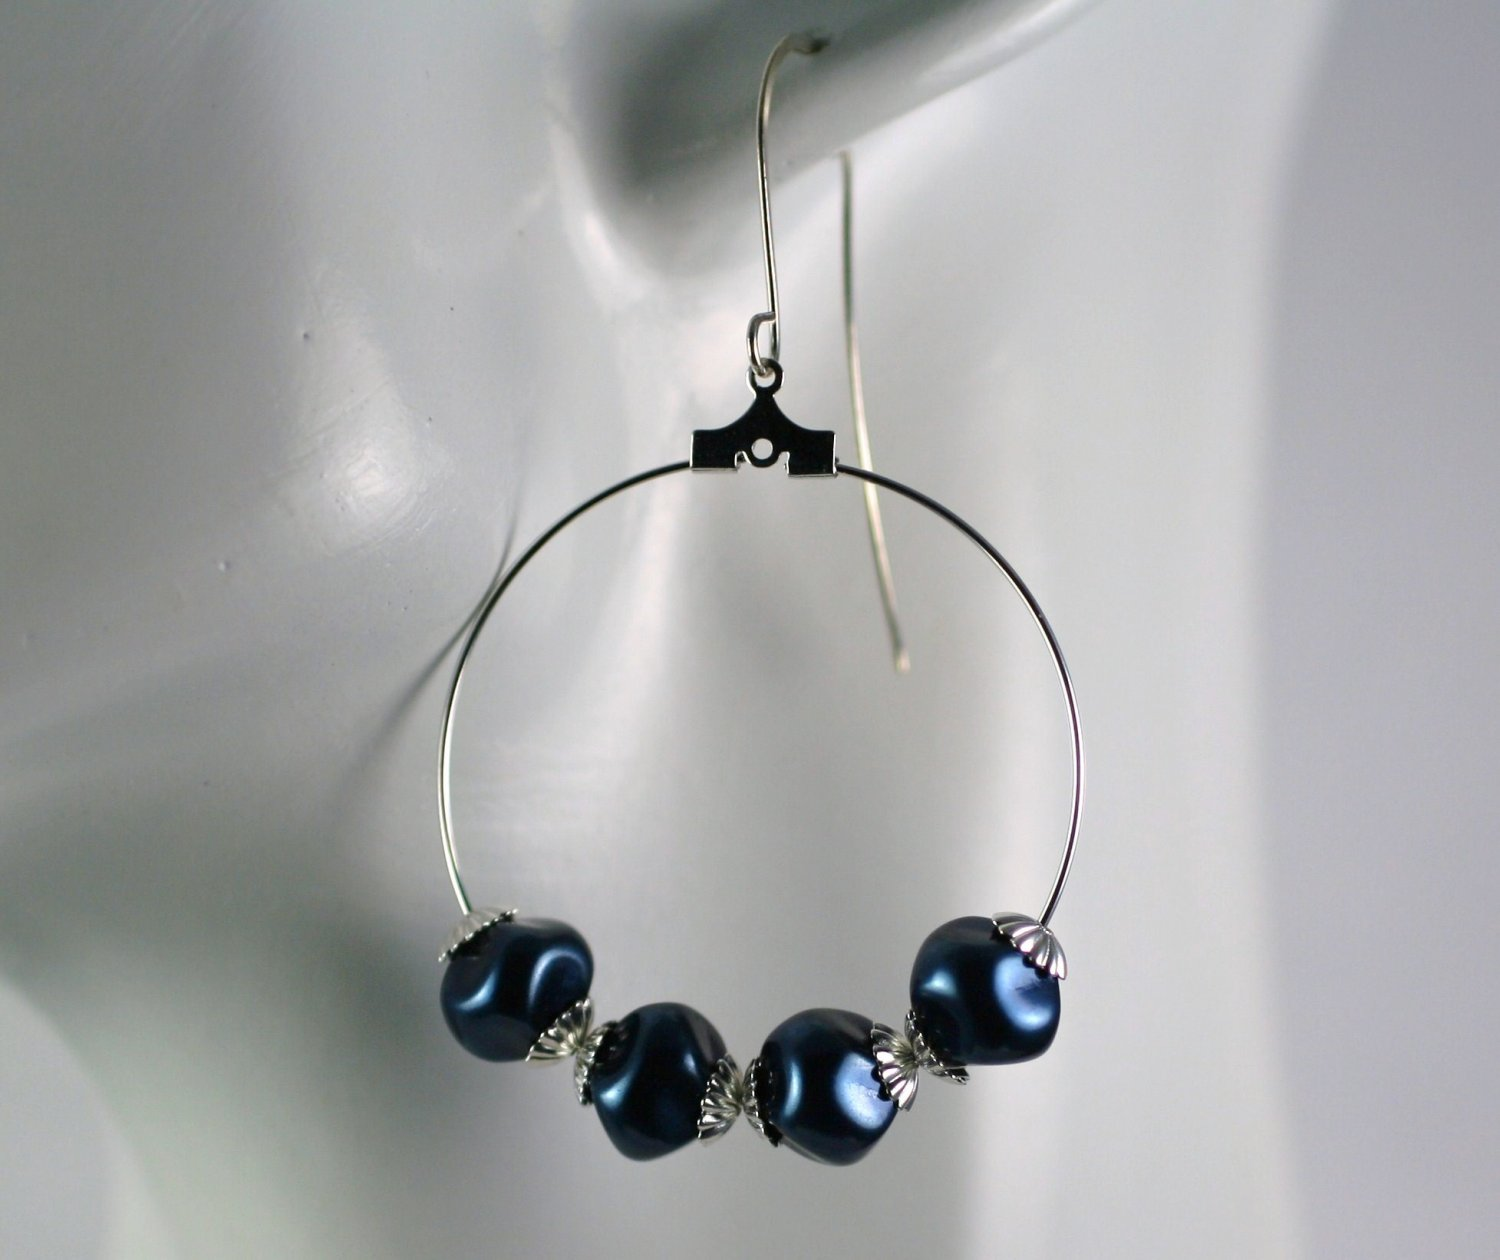 Silver Hoop Earrings with Dark Blue Faux Pearl Beads 1.5 in.  Handcrafted Jewelry